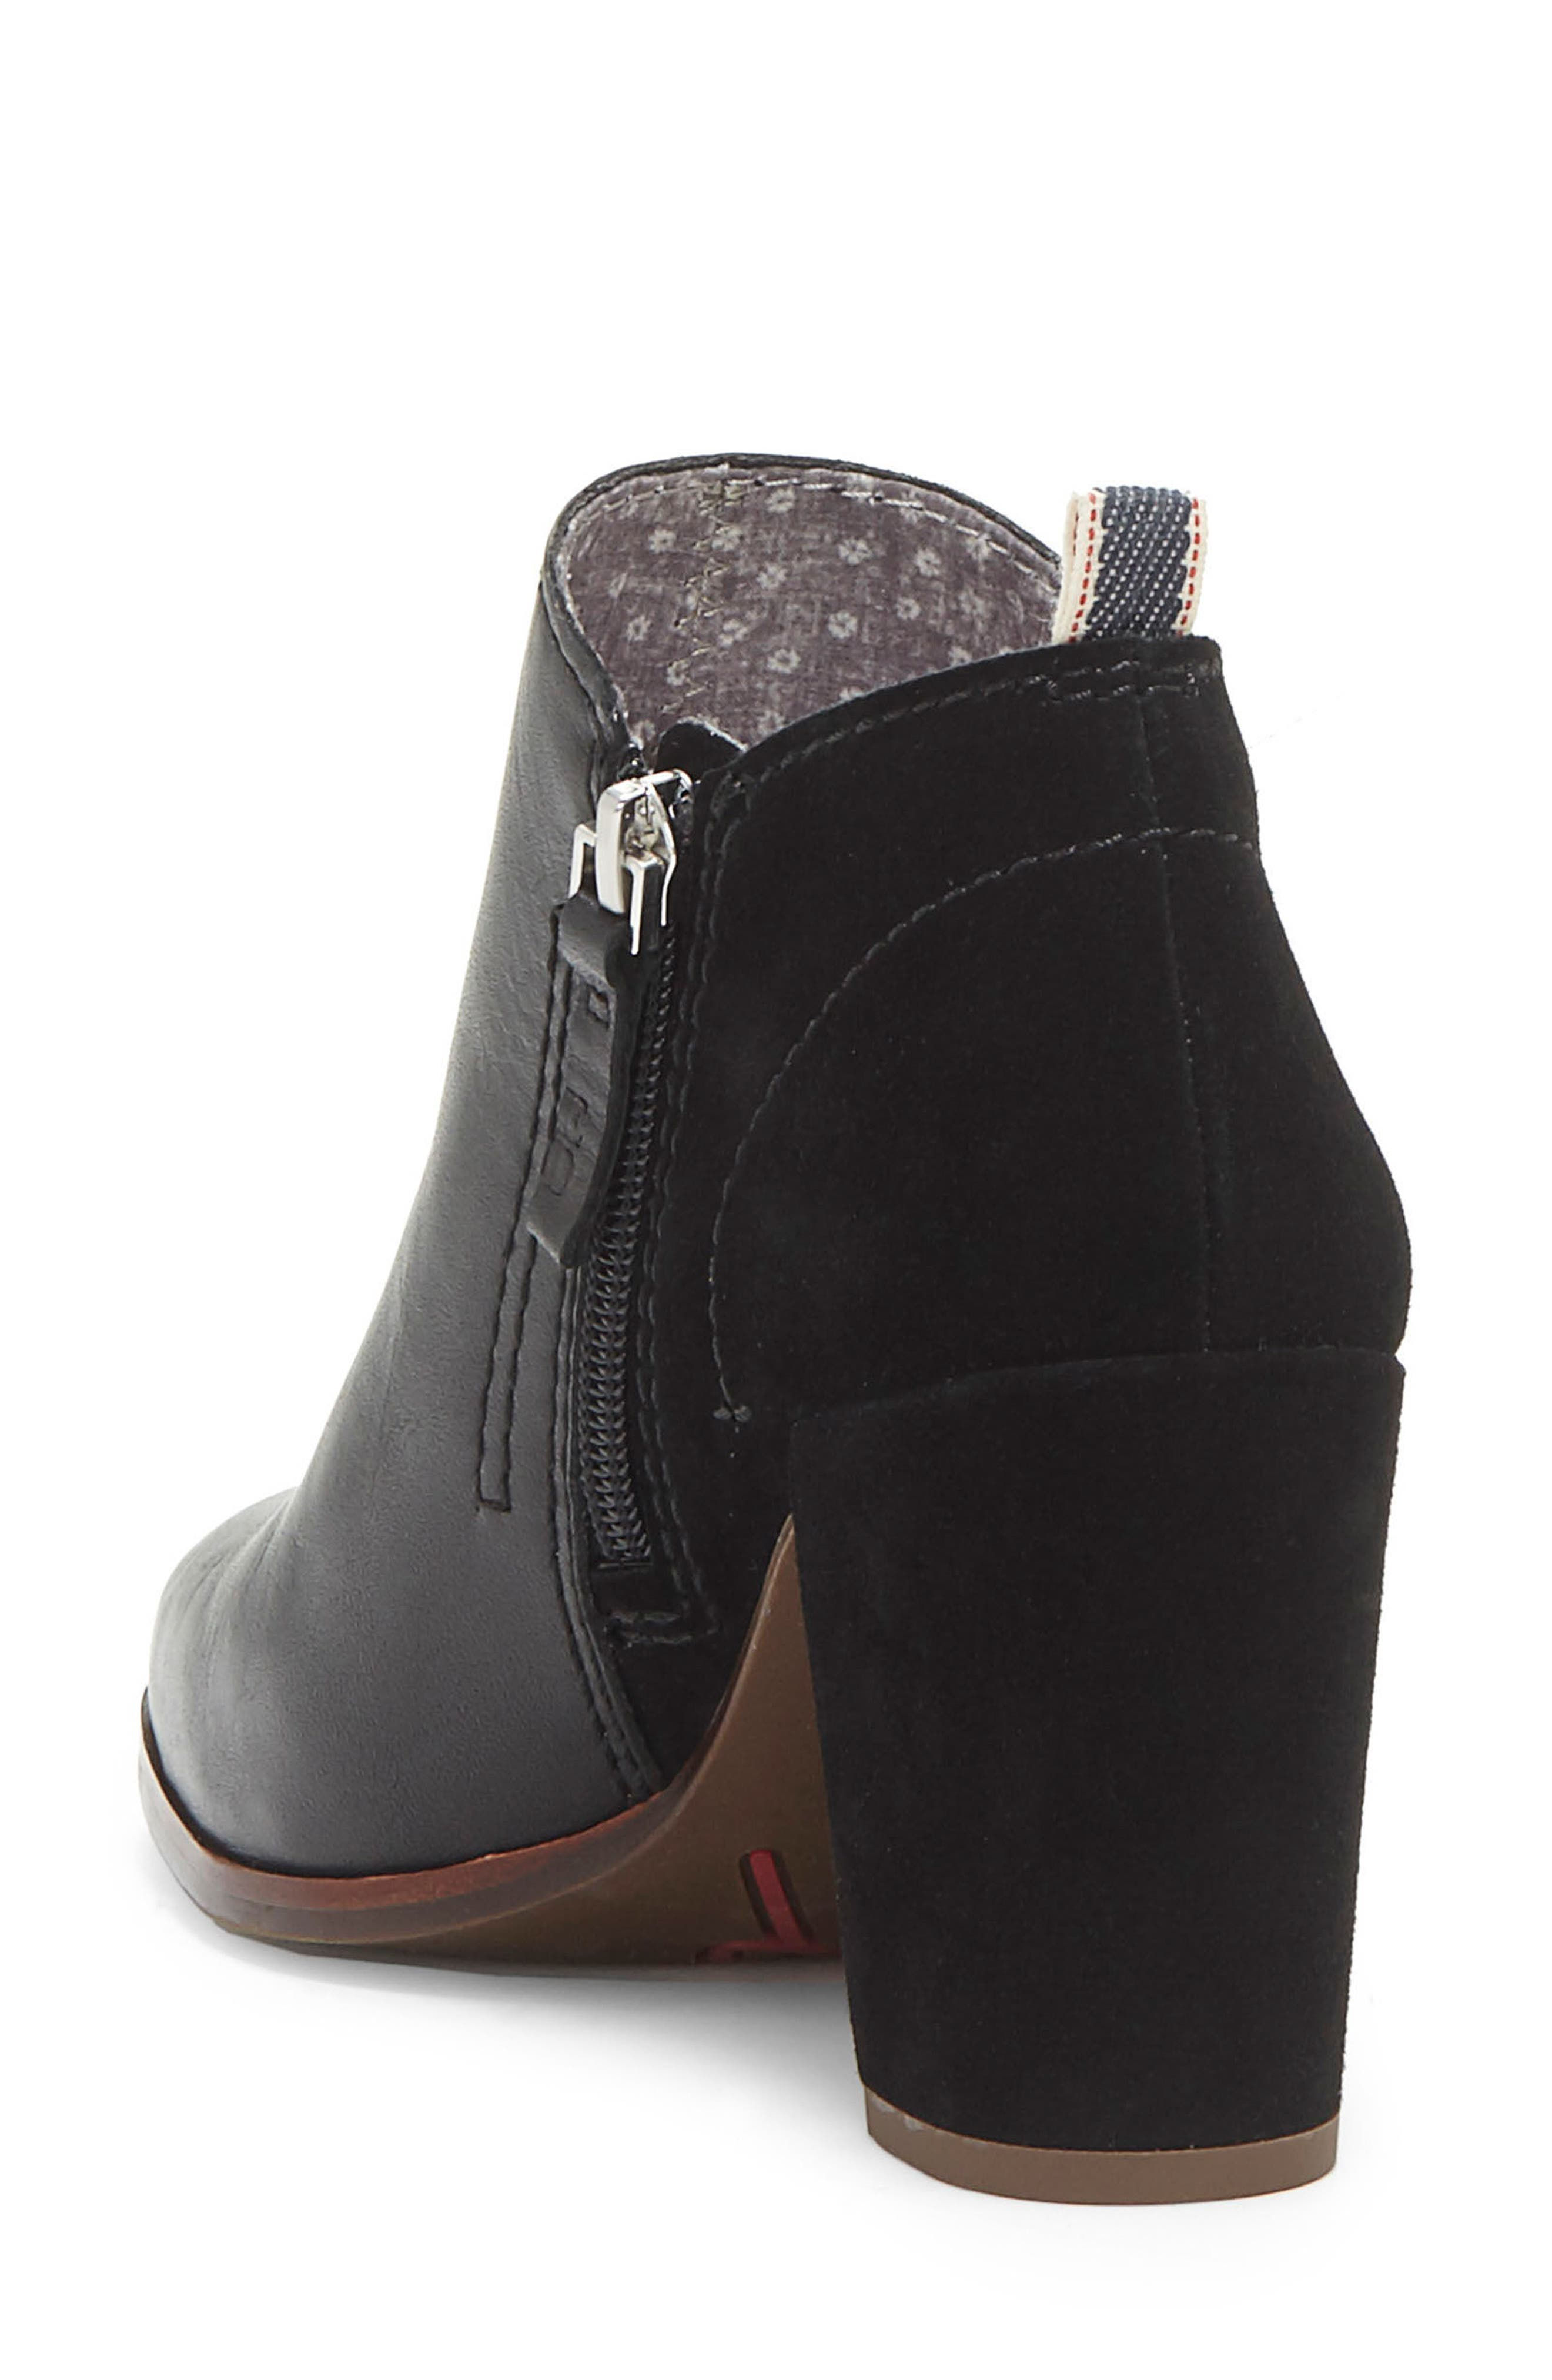 Madeleina Bootie,                             Alternate thumbnail 2, color,                             Black Leather